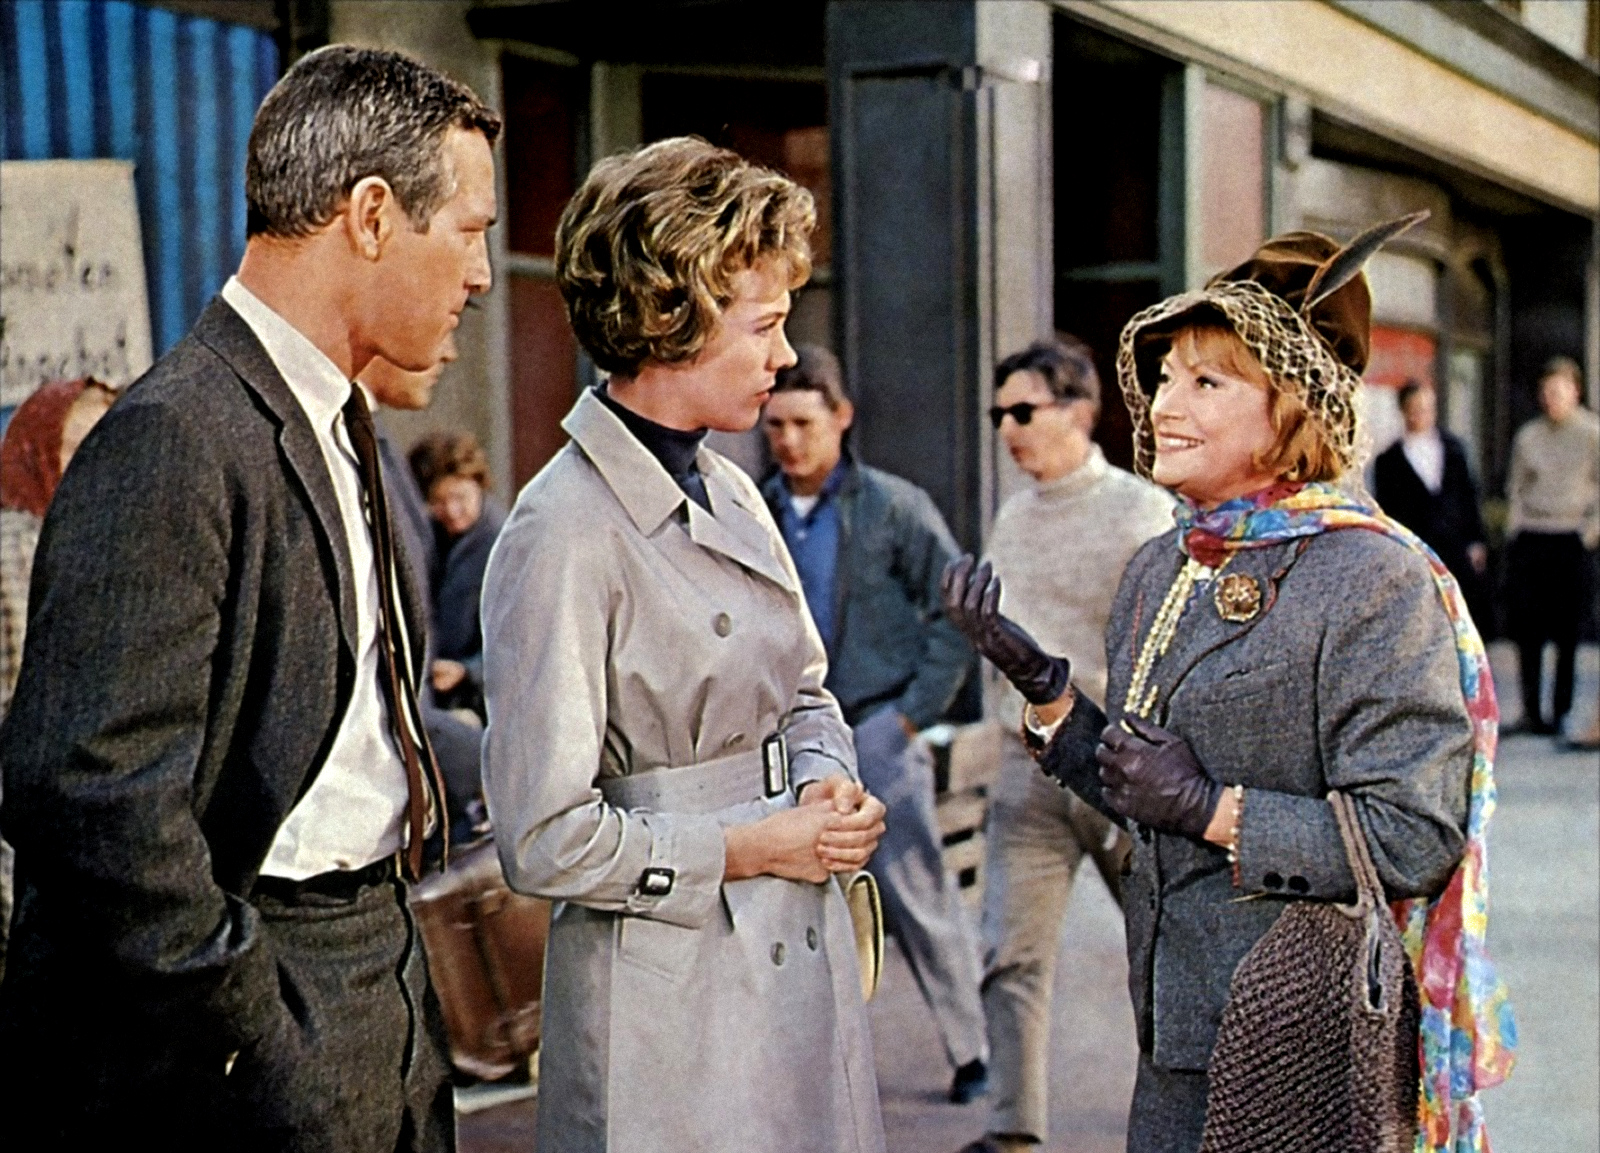 Paul Newman, Julie Andrews, and Lila Kedrova in Torn Curtain (1966)